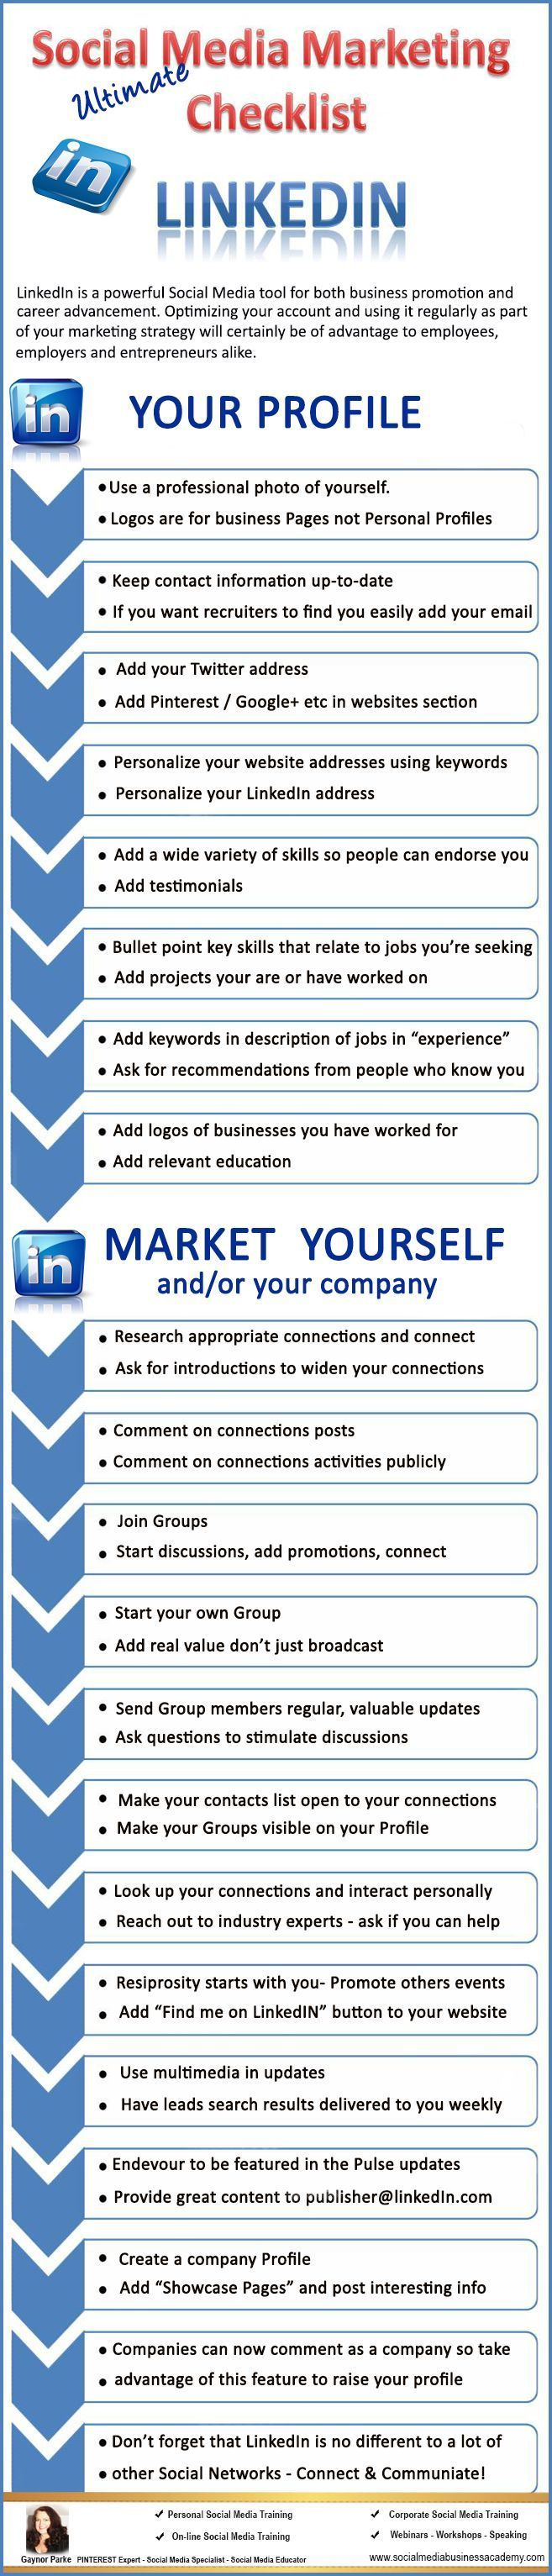 LinkedIn checklist and tips to grow your business and #linkedinmarketing